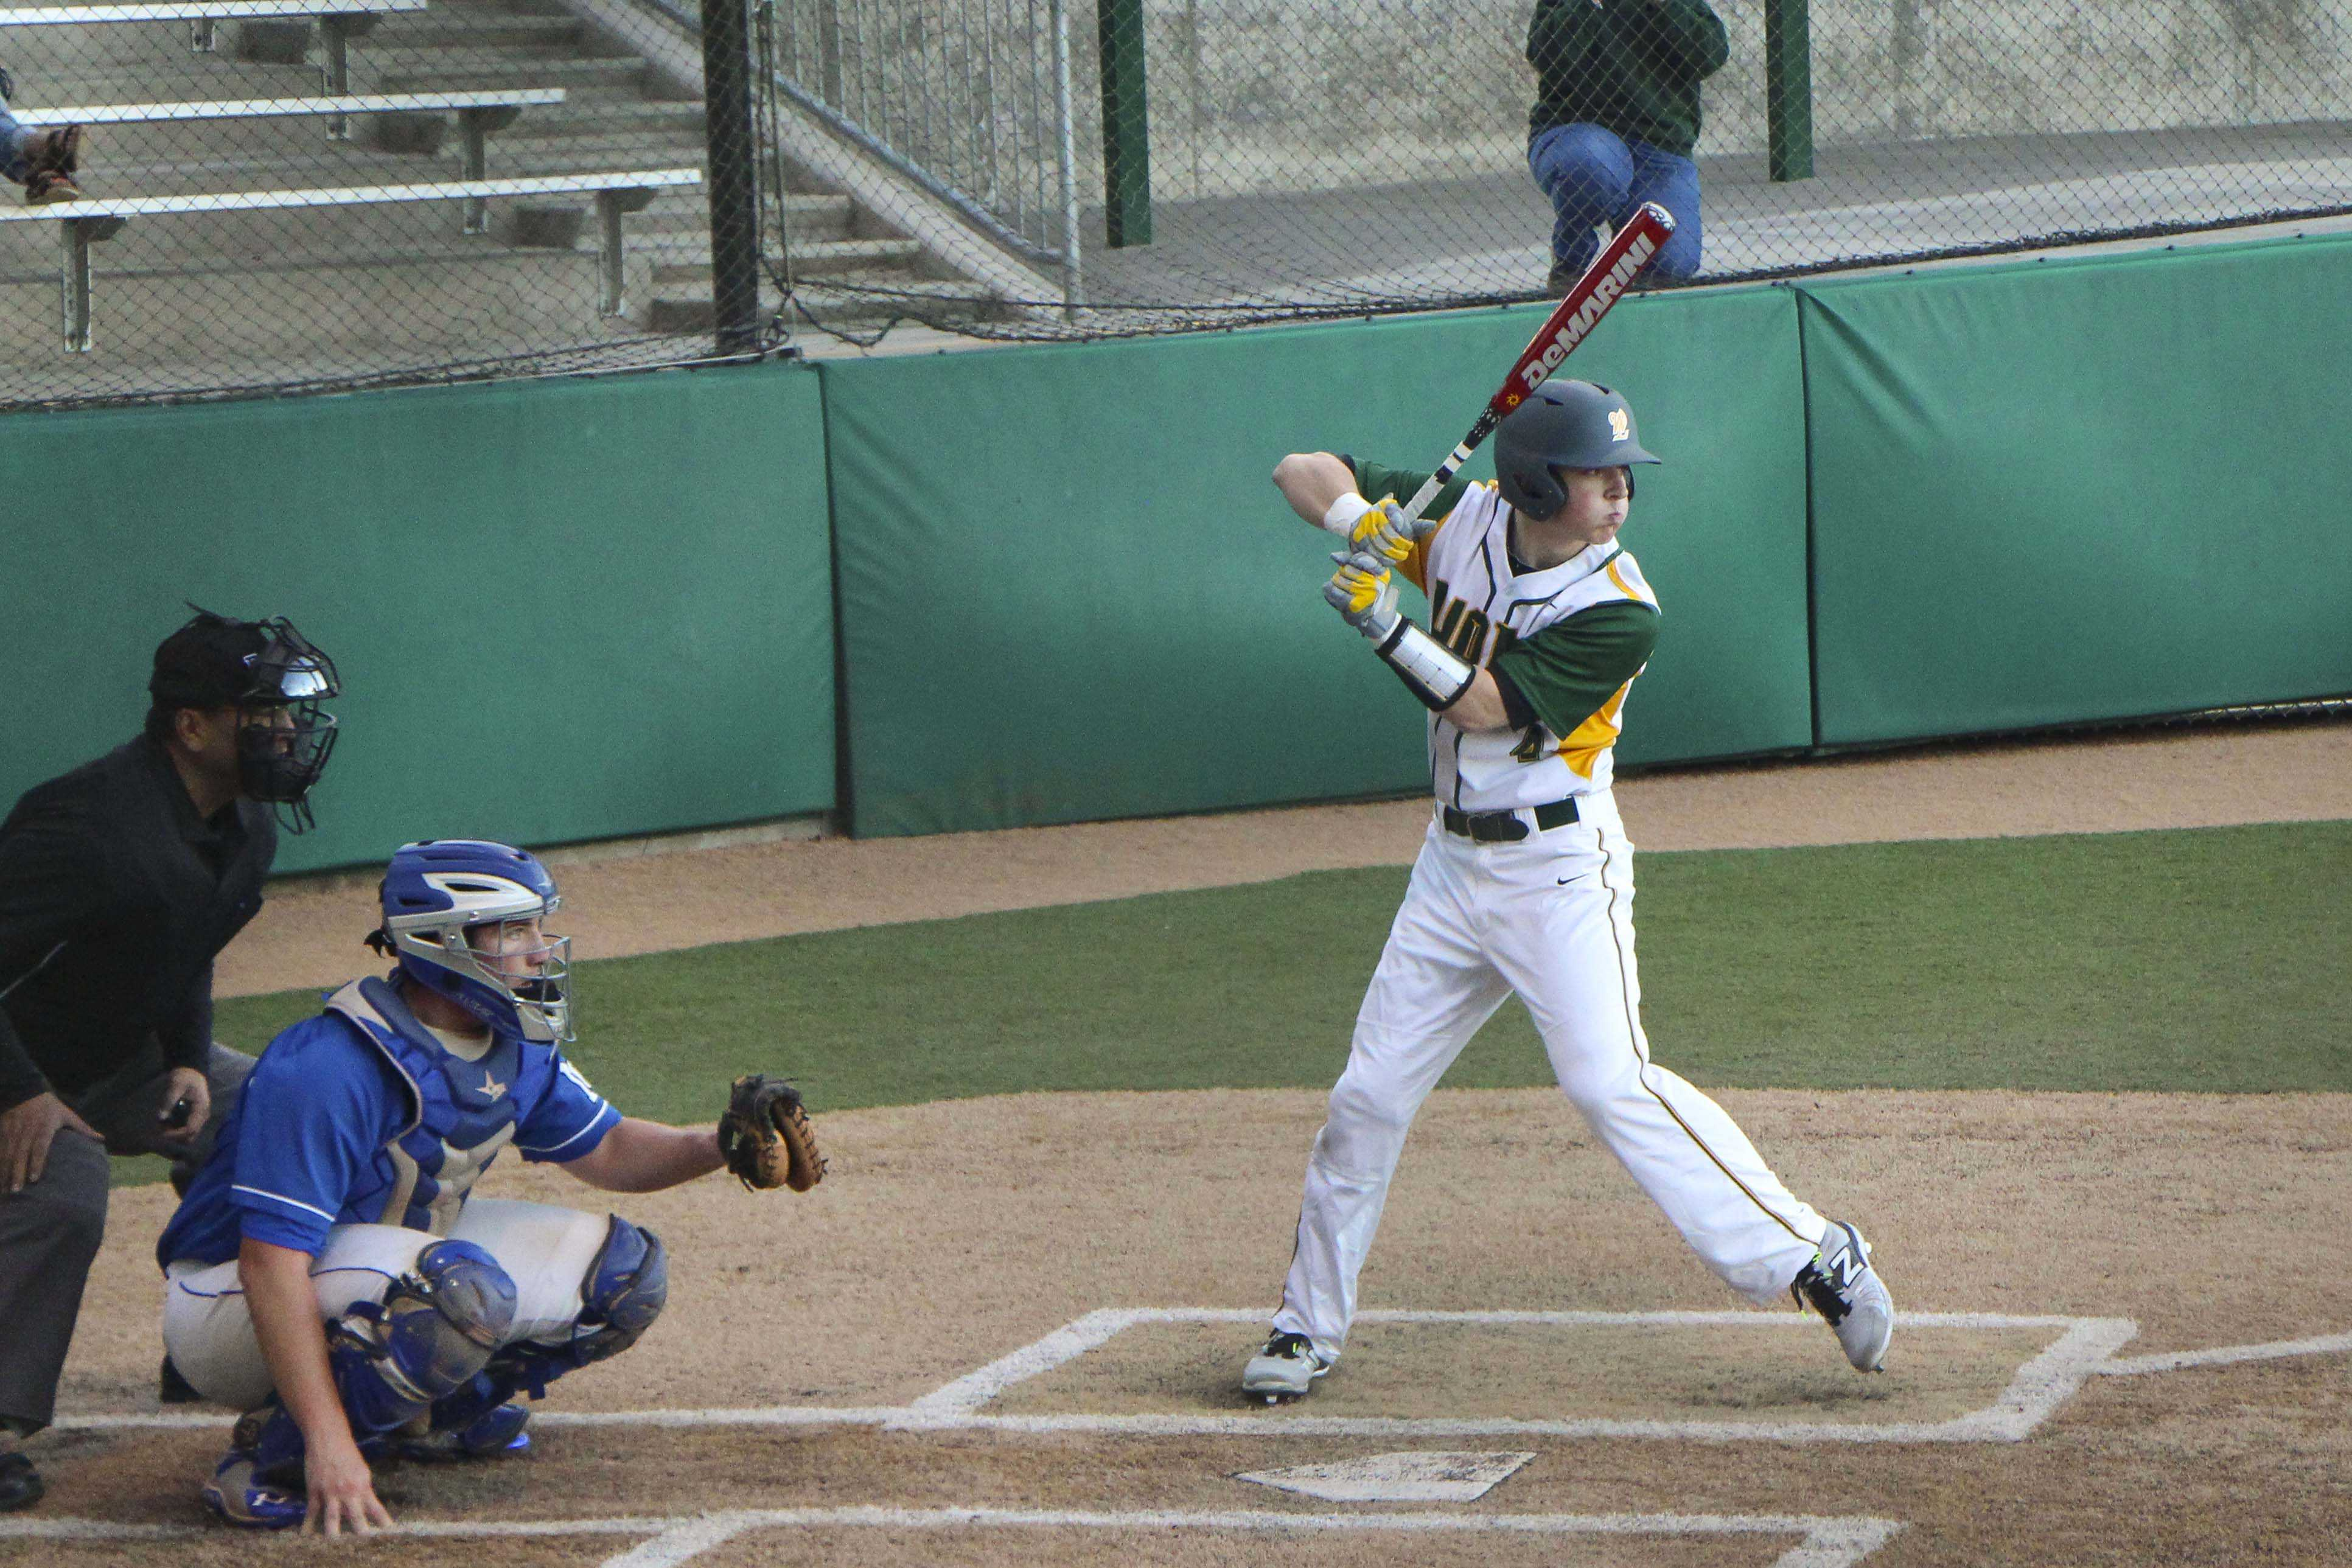 Brayden Pene, junior, bats against McNary on March 18. Against Tualatin he hit a homerun in two straight games helping to lead the Lions to a 5-2 win.